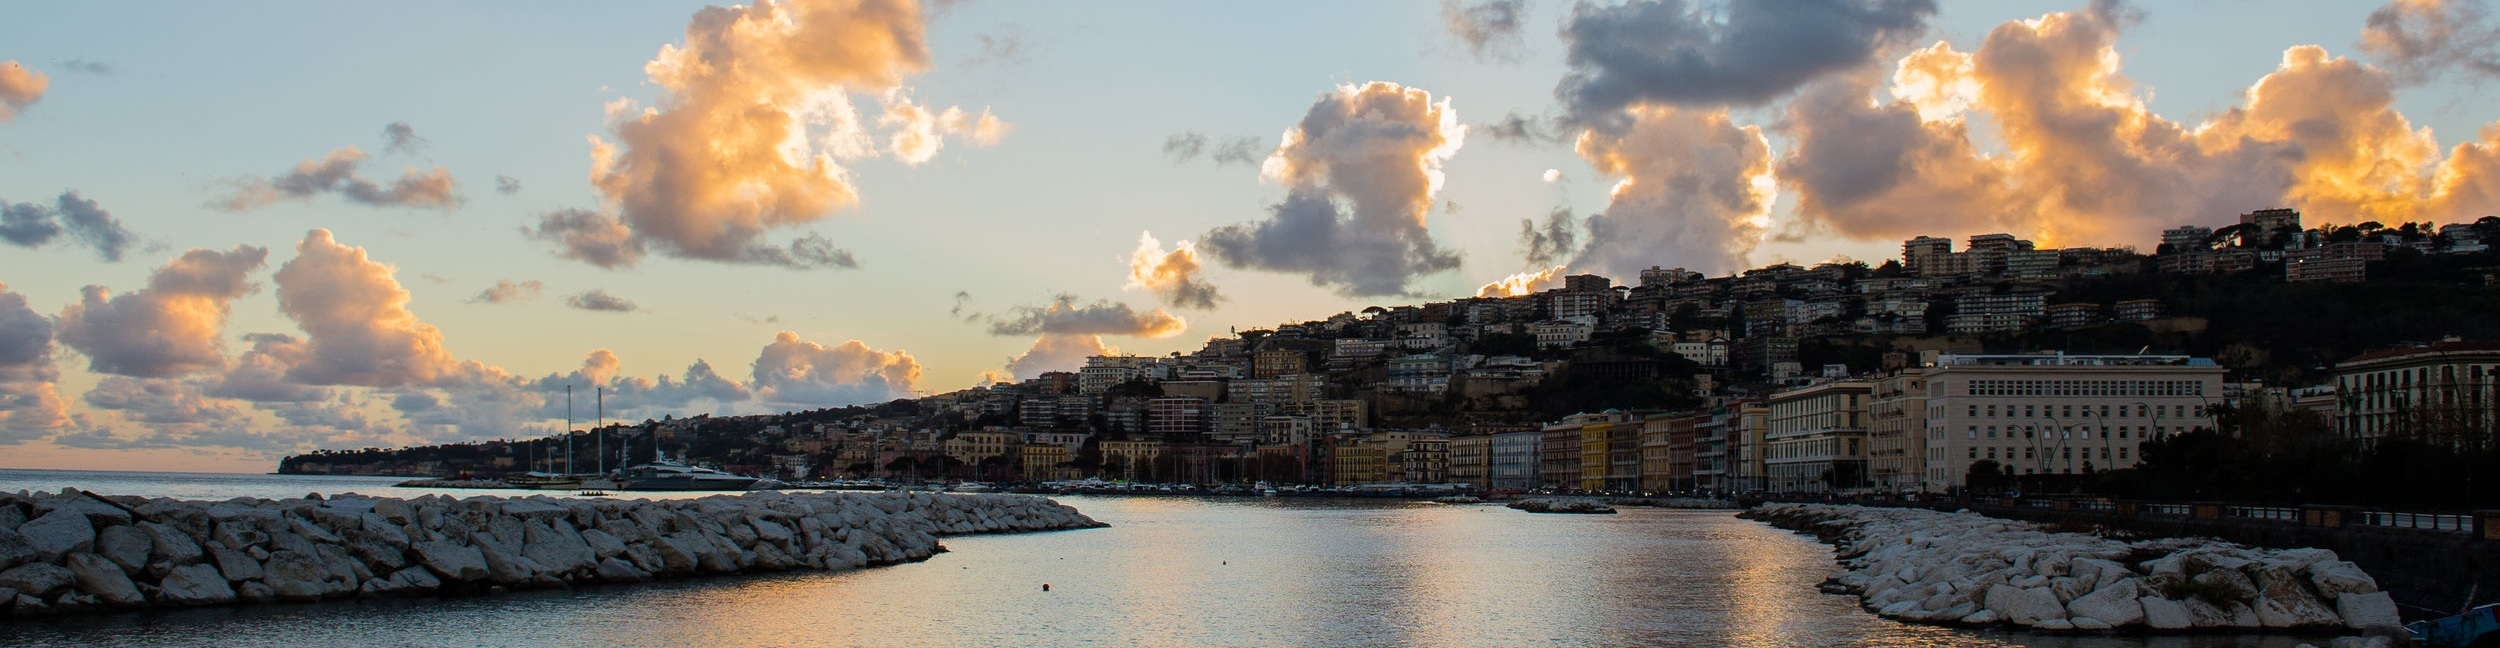 Naples at sunset